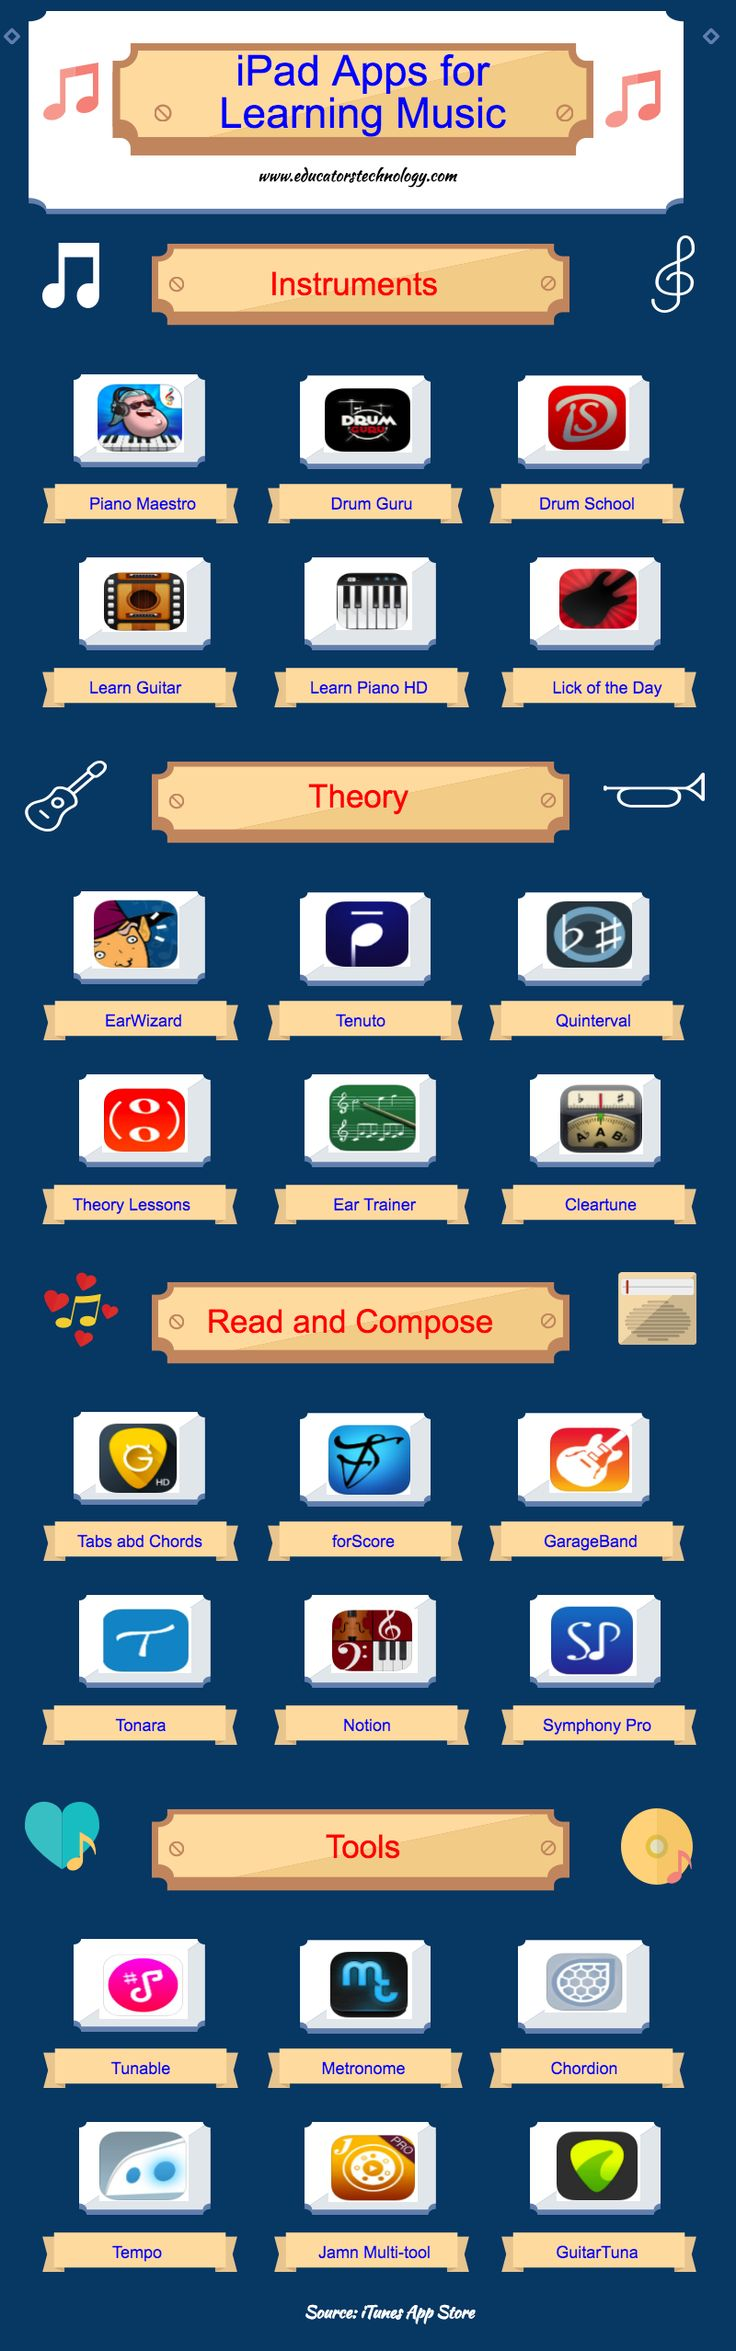 An Interesting Infographic Featuring Top Apps for Learning Music ~ Educational Technology and Mobile Learning